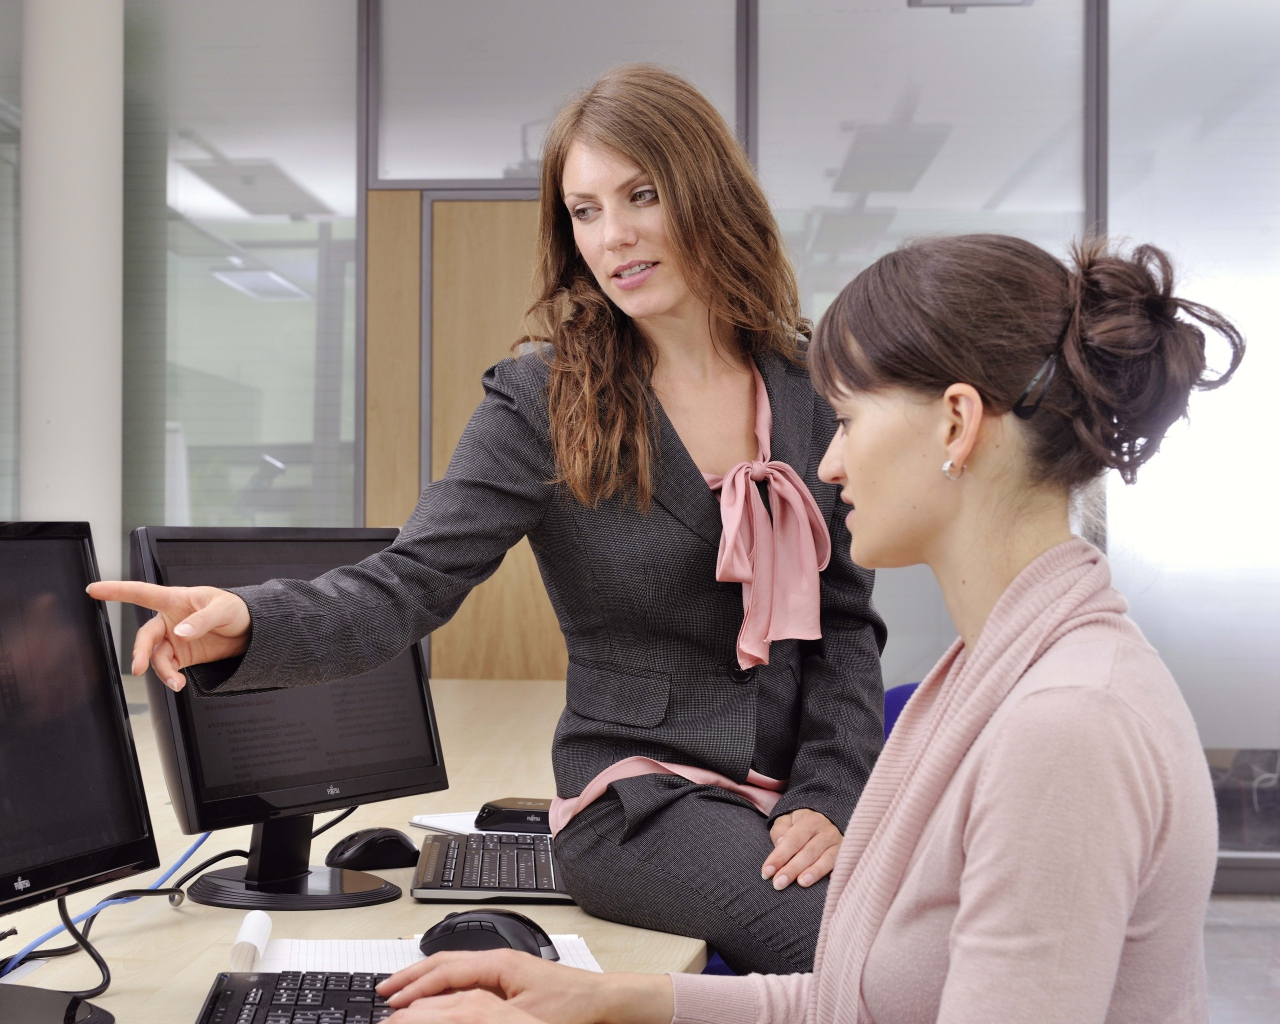 girls_monitors_computer_office_work_coaching_77405_1280x1024